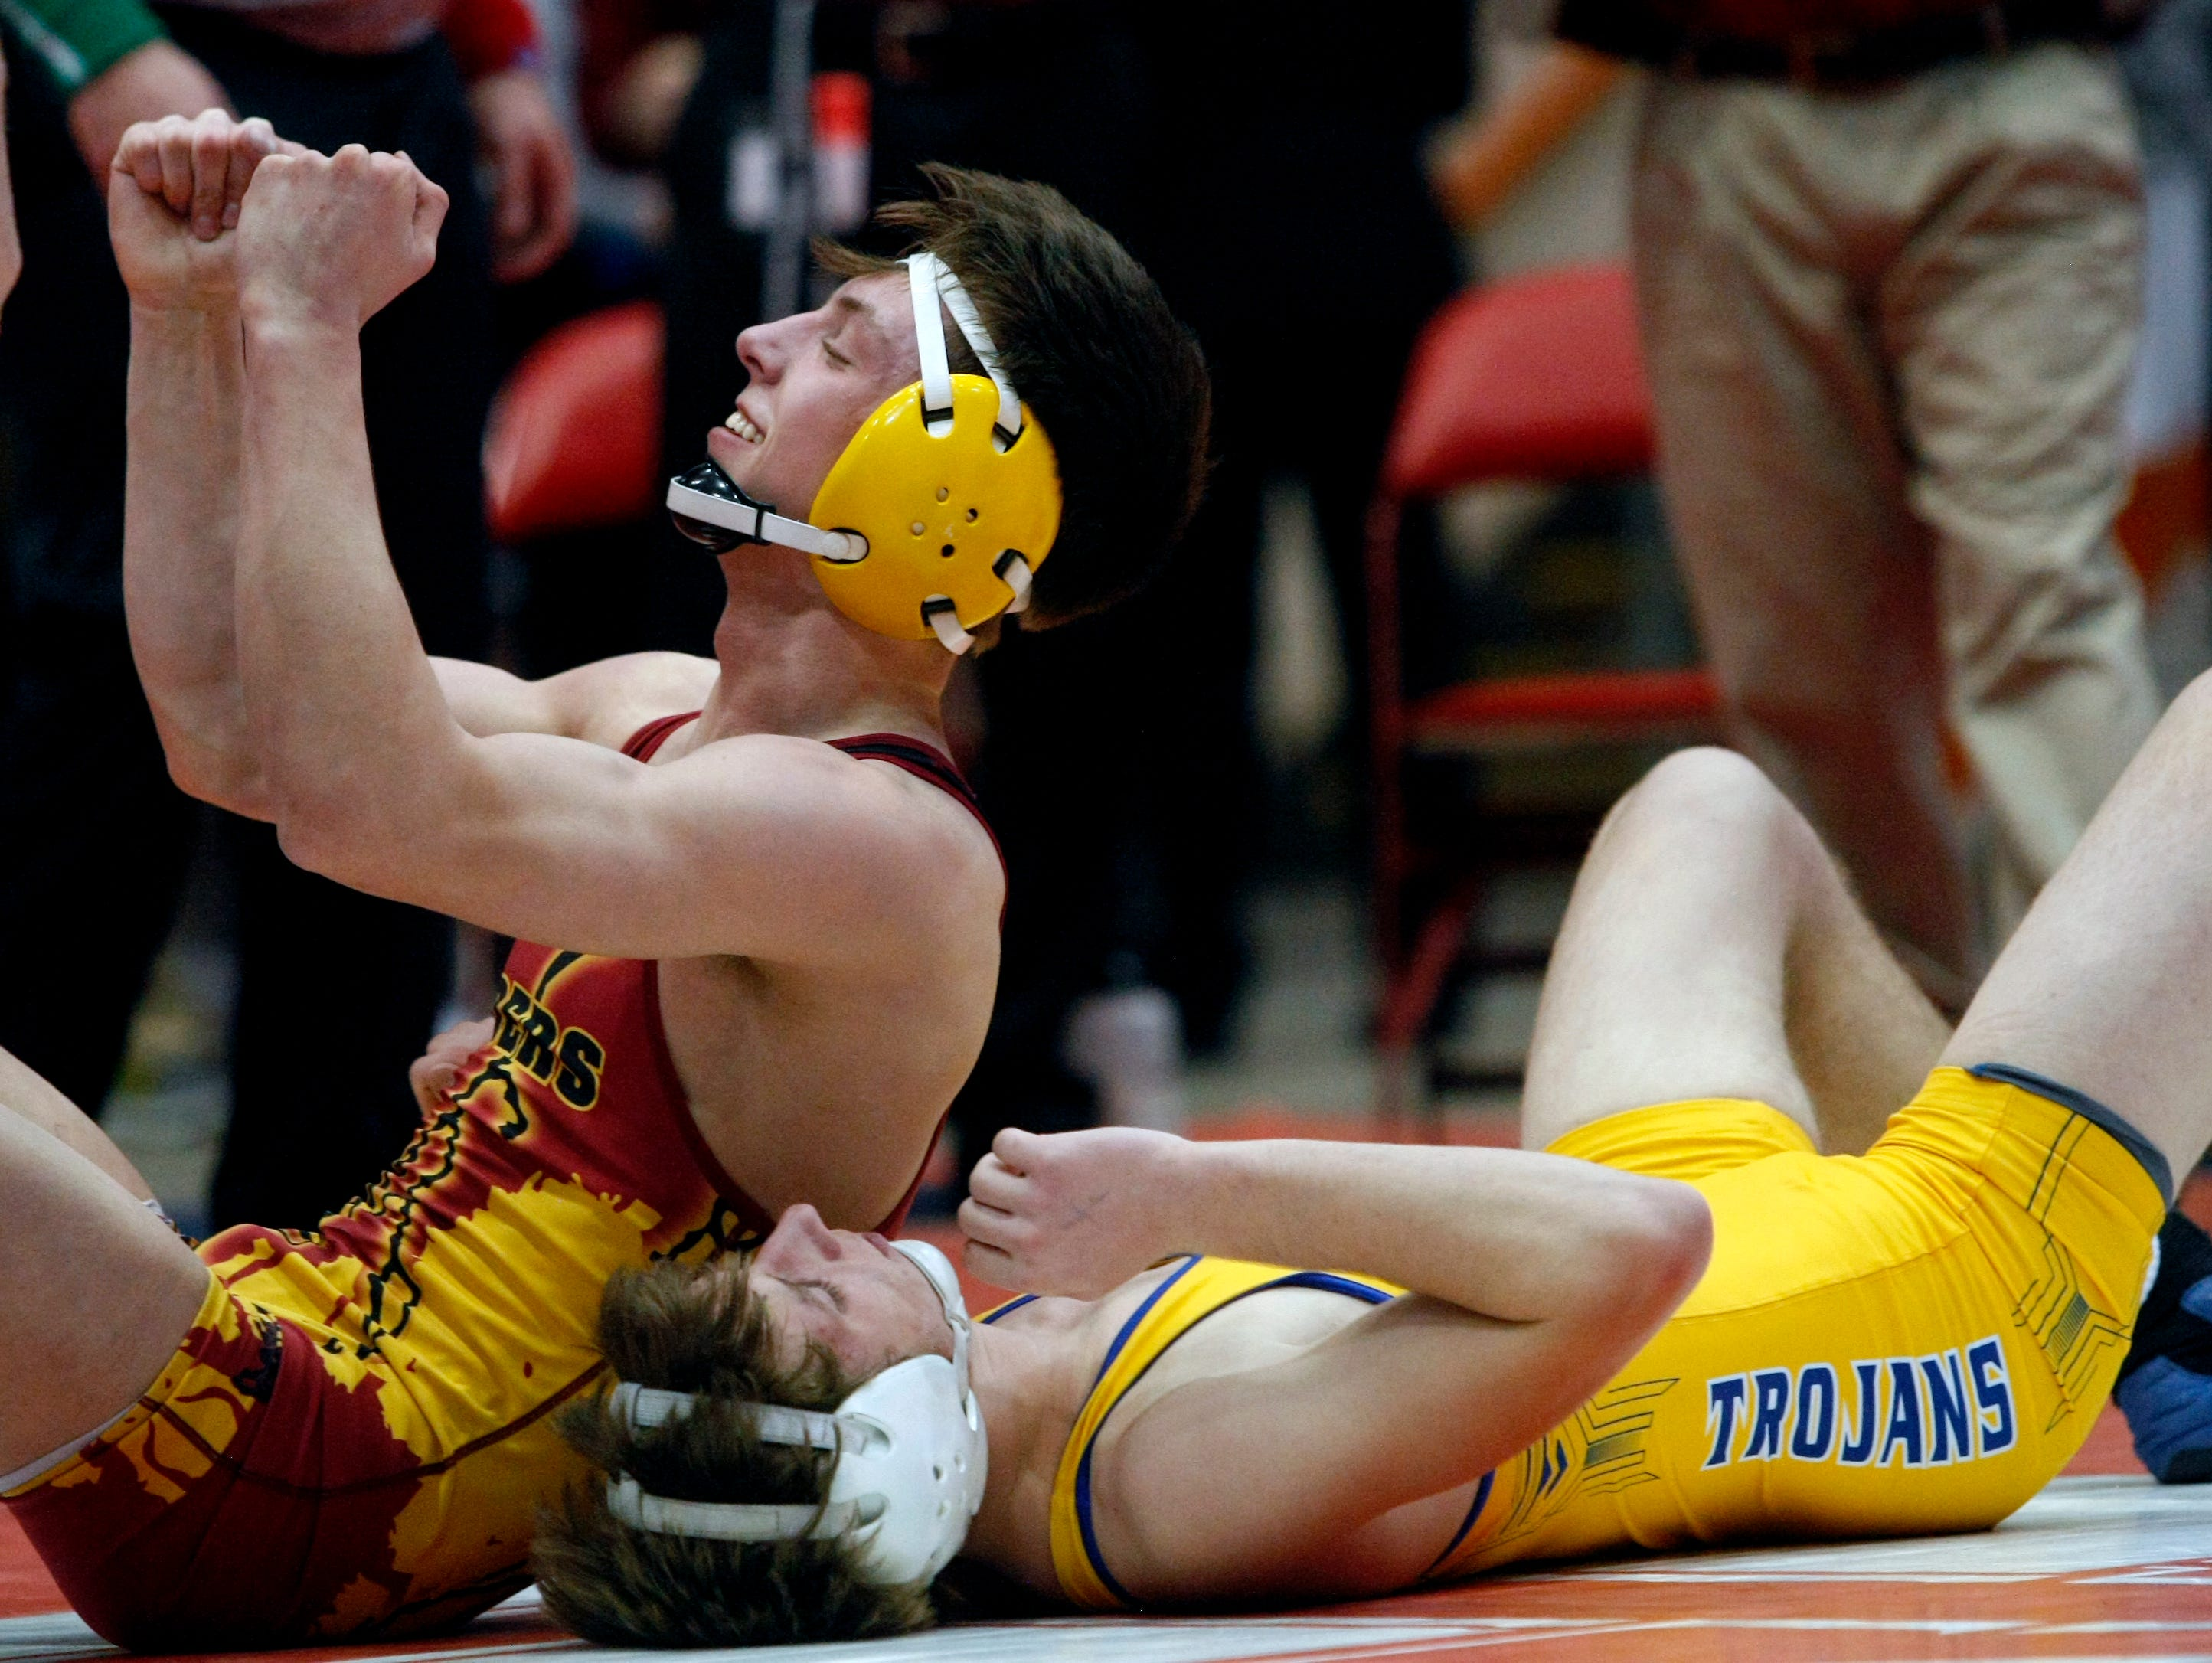 Carter Lohr, Sioux Falls Roosevelt, celebrates after defeating Austin Ideker, of West Central, during the state championship match at 138 pounds Saturday night in Rapid City.